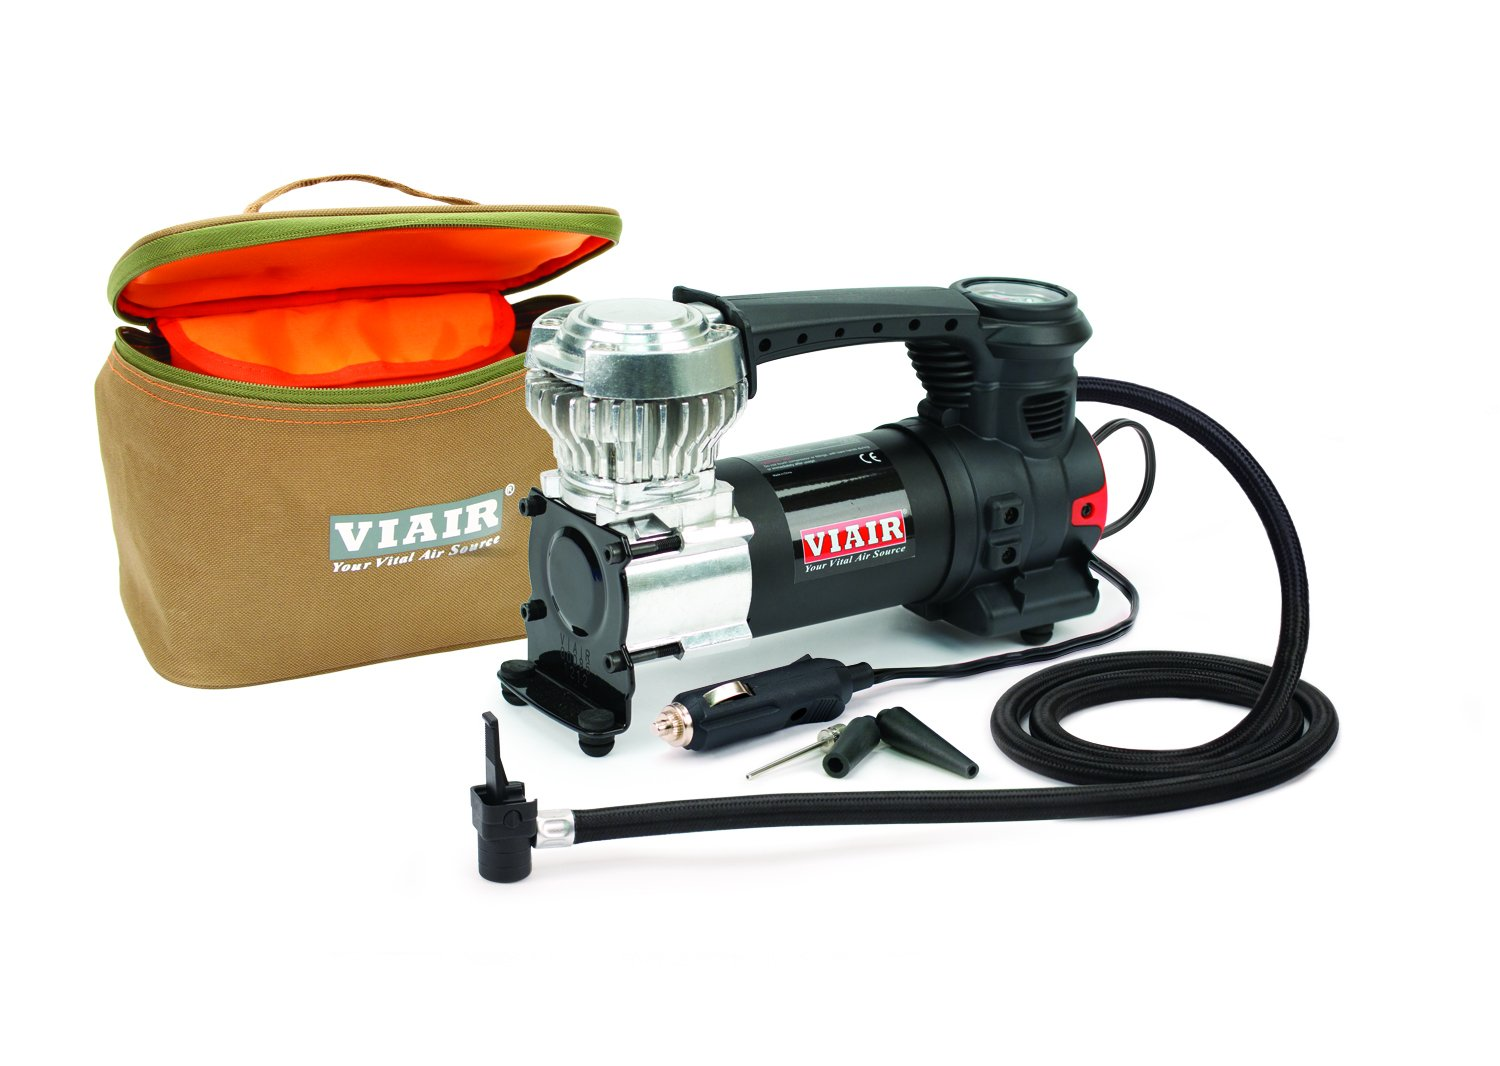 Viair 84p Portable Compressor Automotive That Wiring Diagram Is Identical To What Has On Their Website